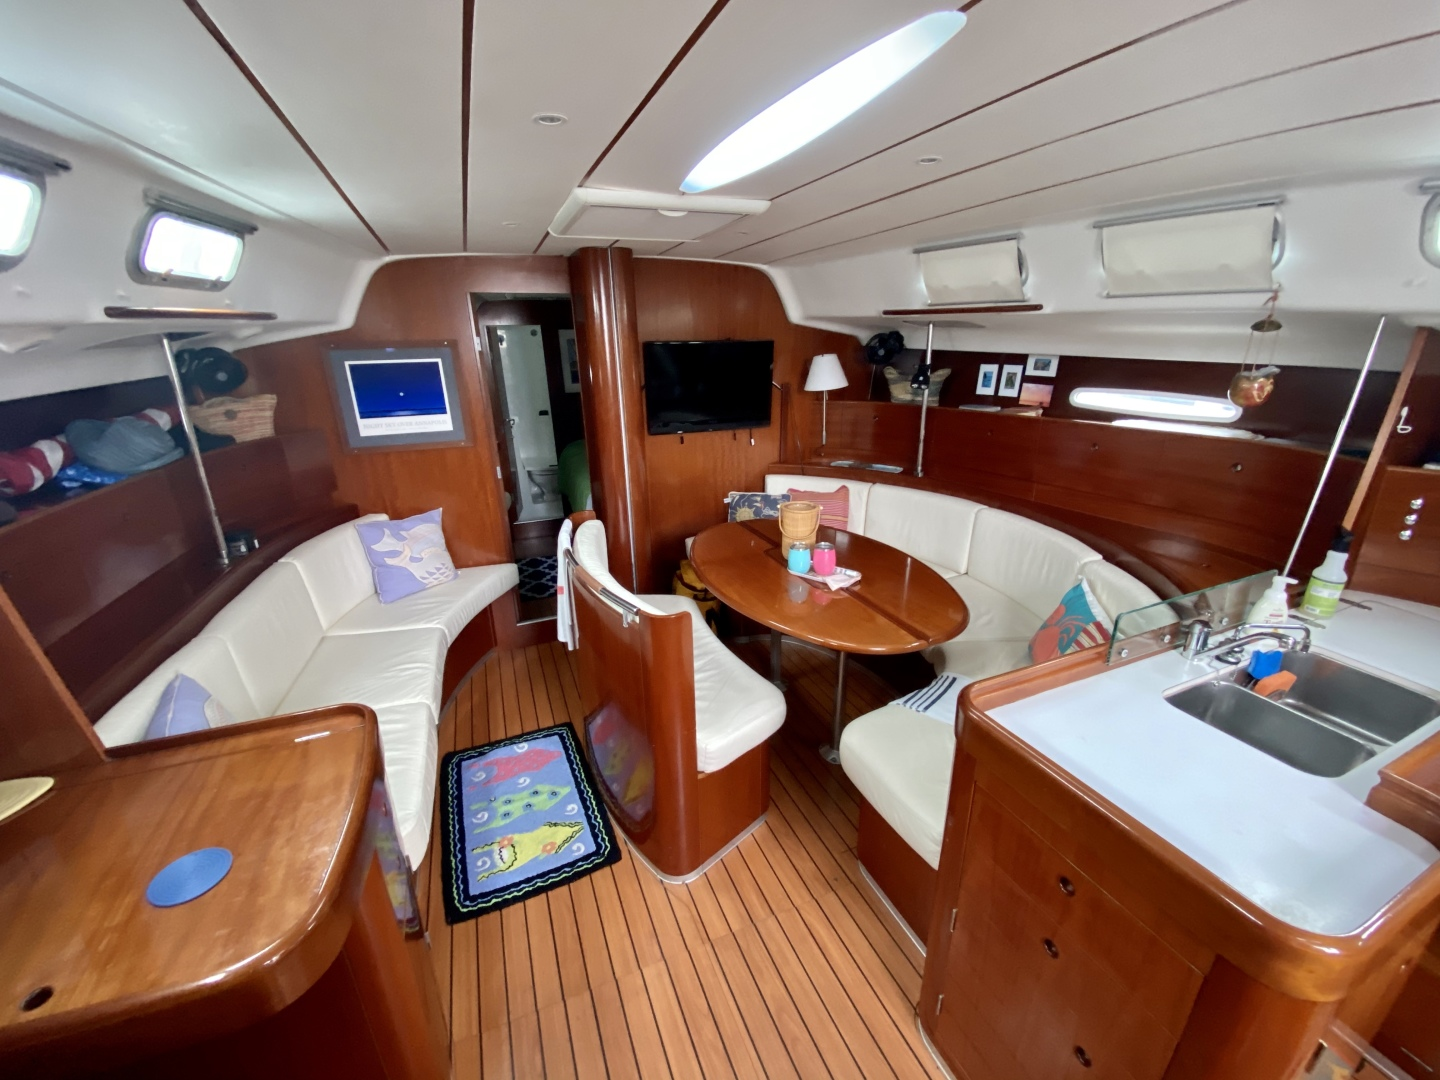 Beneteau-First 47.7 2004 -Portsmouth-Rhode Island-United States-Salon-1551499 | Thumbnail